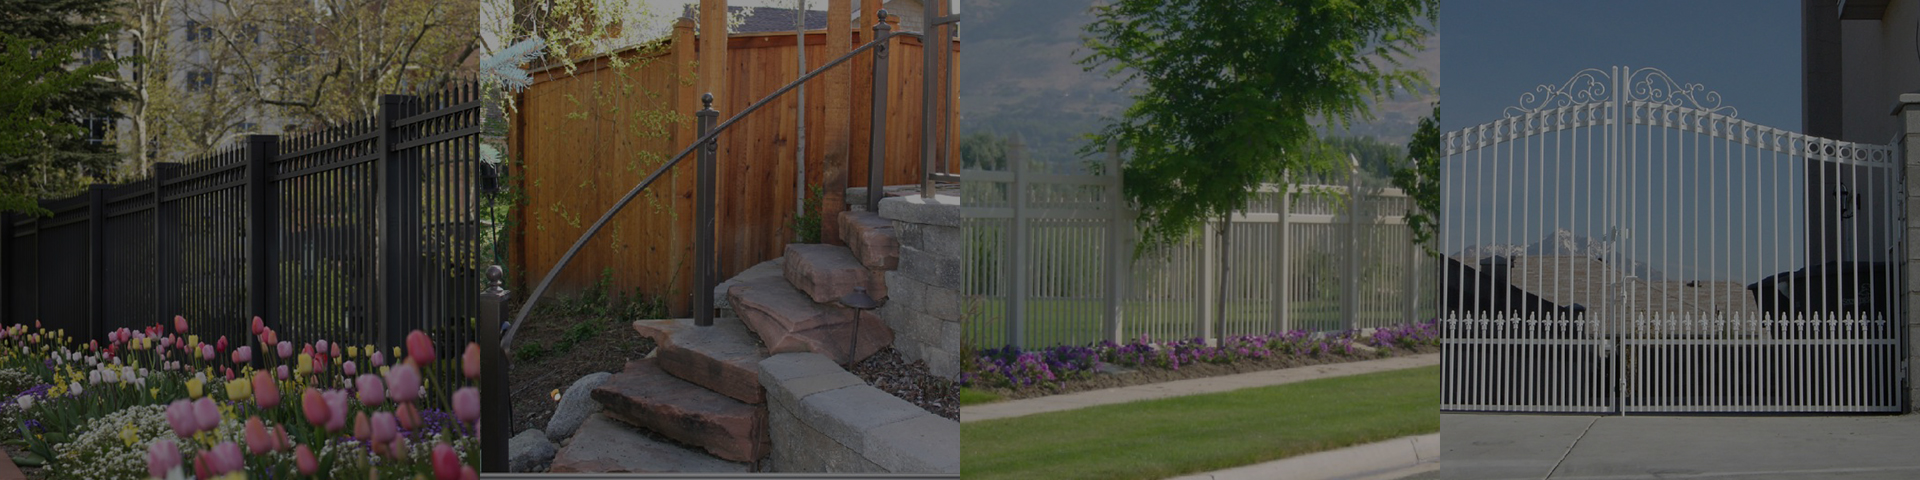 Vinyl Fence Products Utah Trex Composite Fencing Utah S